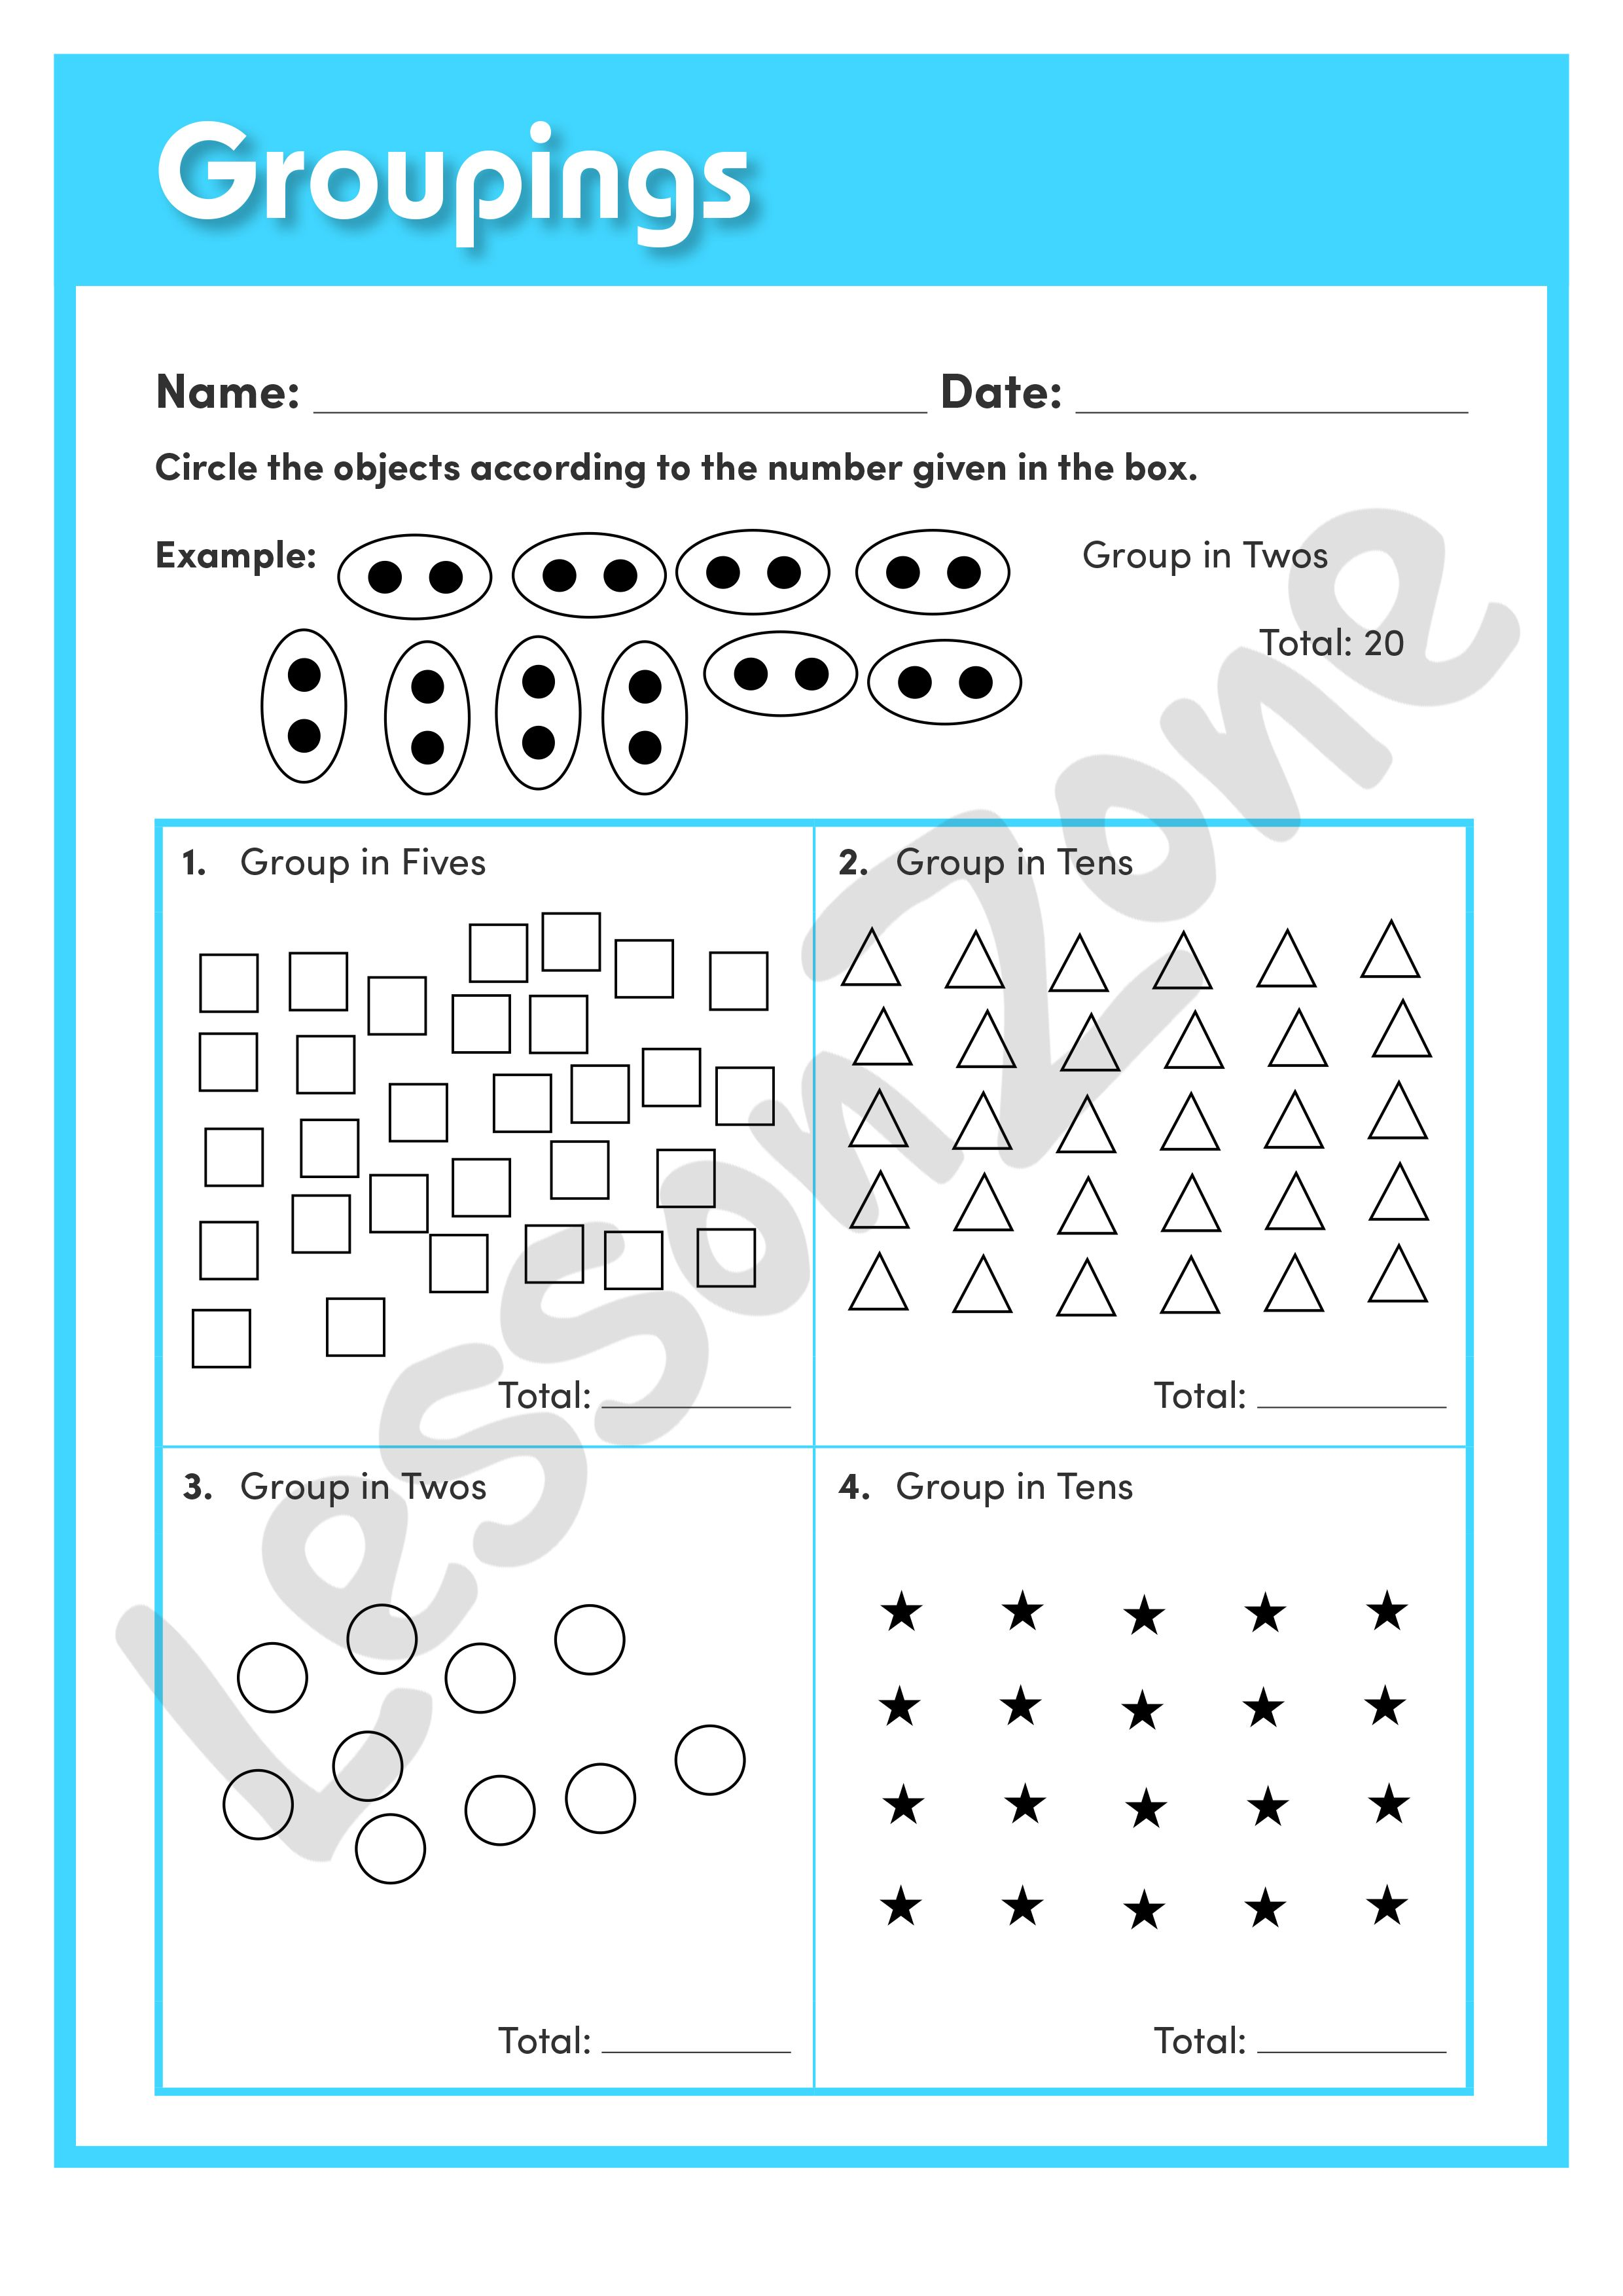 This Understanding Numbers Worksheet Groupings Asks Students To